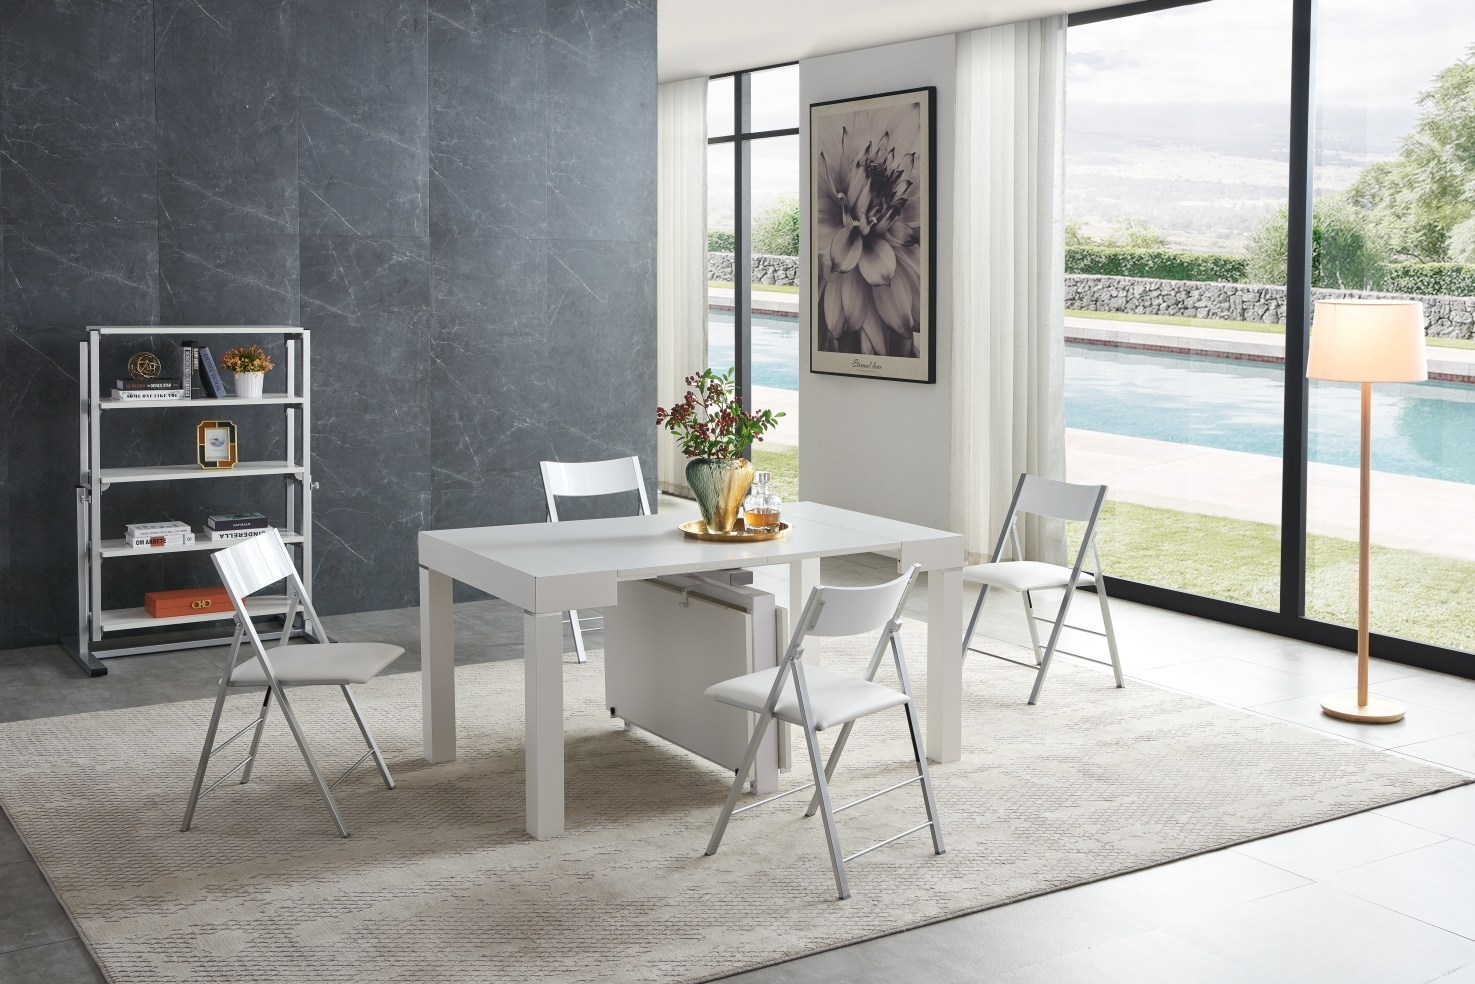 Dining Room Furniture Kitchen Tables and Chairs Sets 2241 Table Transformer with 3332 Chairs